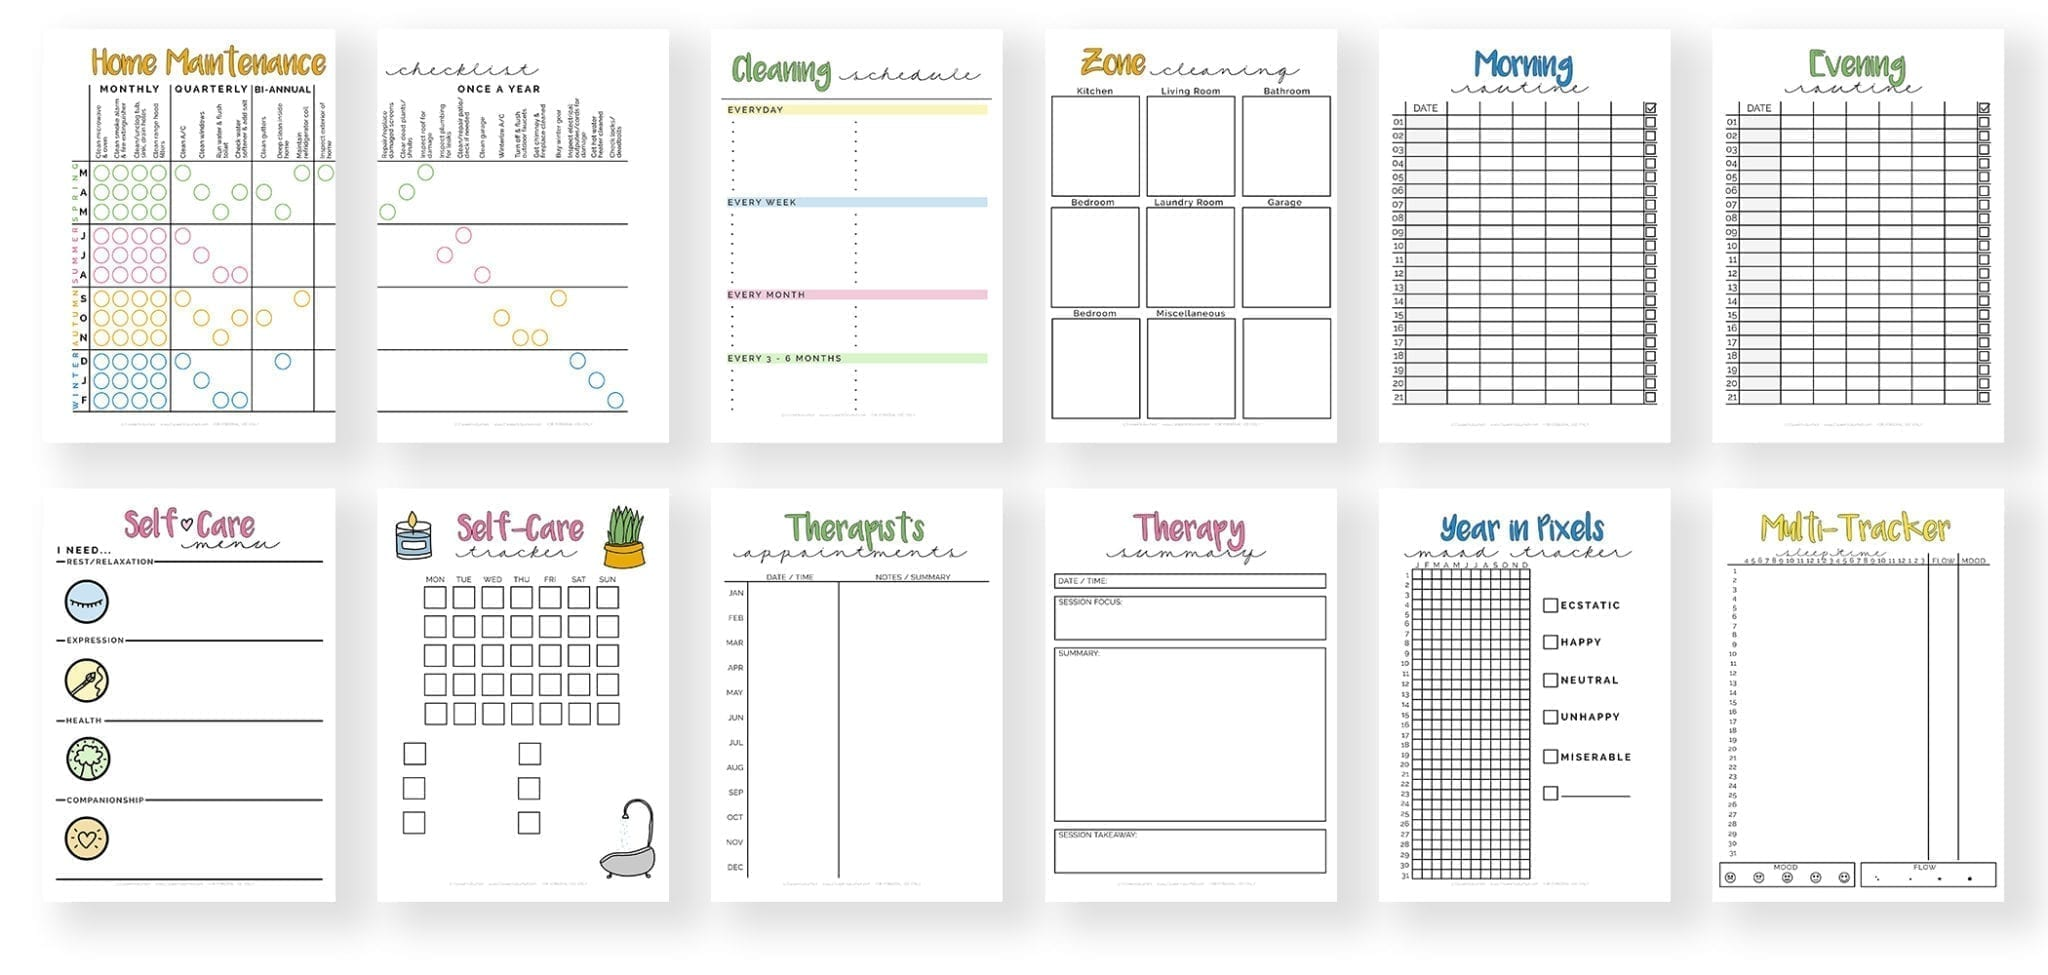 banner2-home maintenance-cleaning schedule-zone cleaning-morning and evening routine-self-care menu-self-care tracker-therapist appointments and summary-year in pixels mood tracker-multi tracker